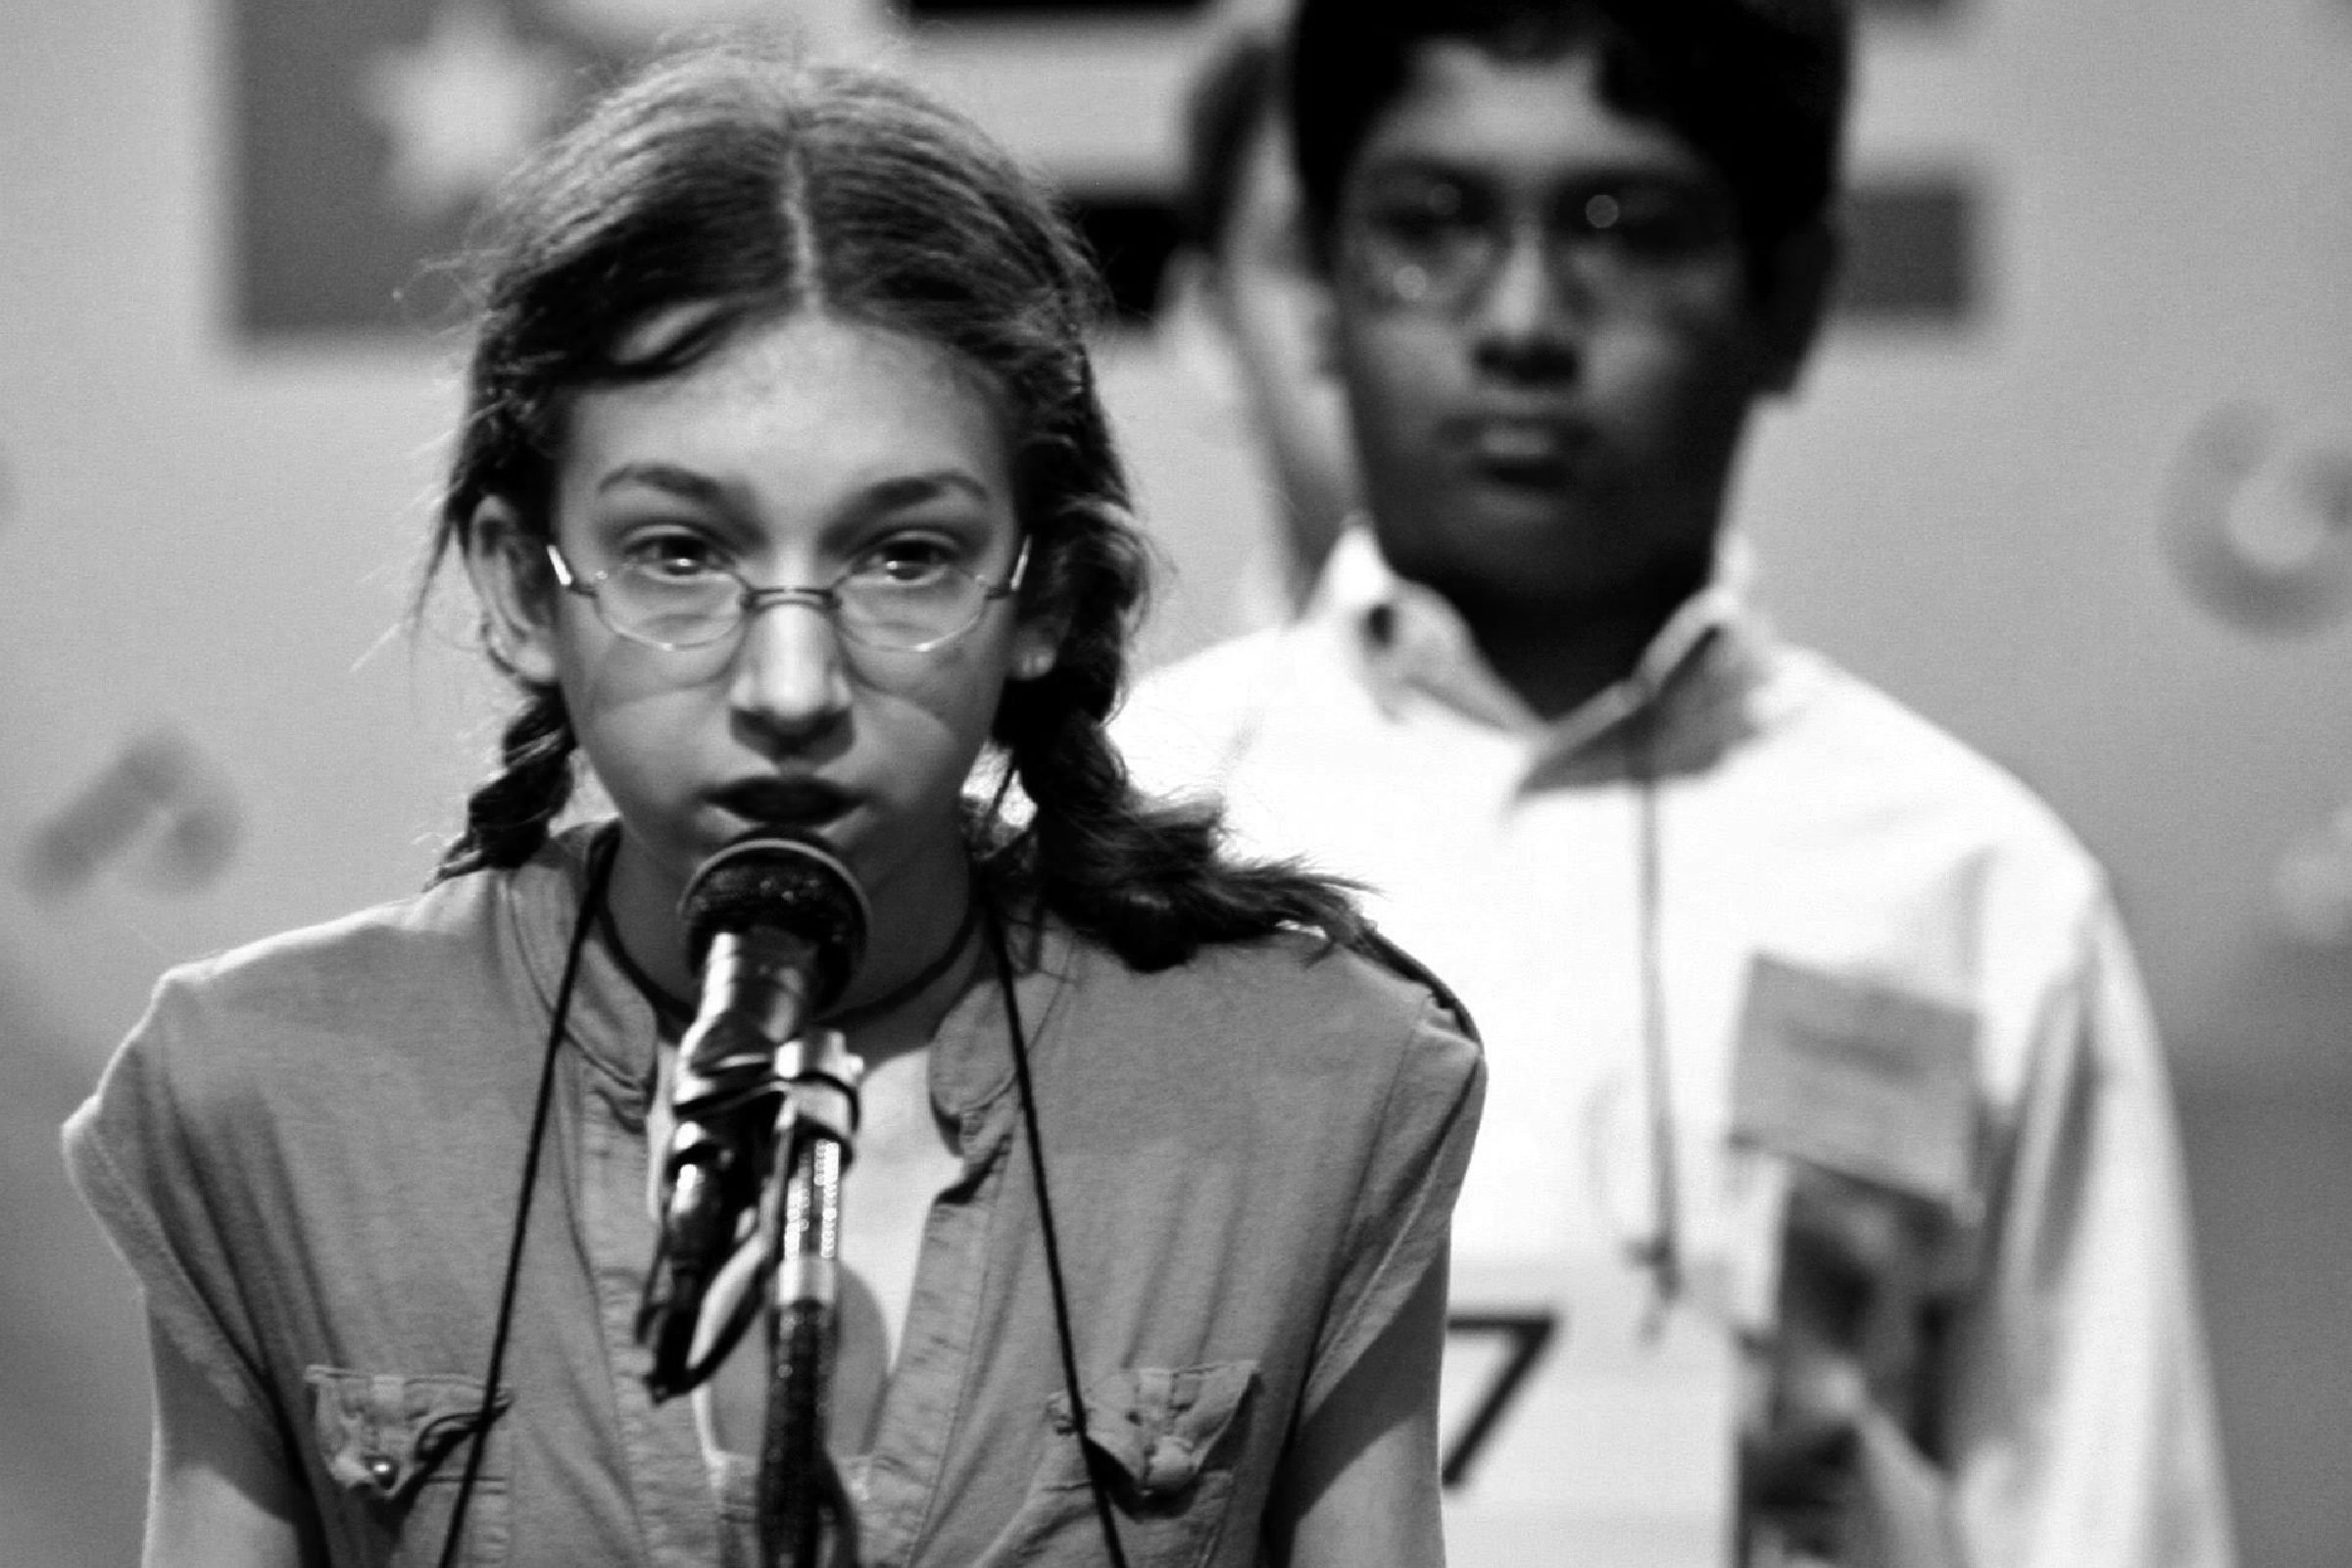 Mattia H Phaneuf 13 of West Tisbury Massachusetts Spells Her Word During the 2006 Scripps National Spelling Bee in Washington Dc On Tuesday 31 May 2006 the Winner of the Competition Will Be Announced For the First Time On Live Prime Time Television Tomorrow Evening There Are 275 Spellers in the Competition